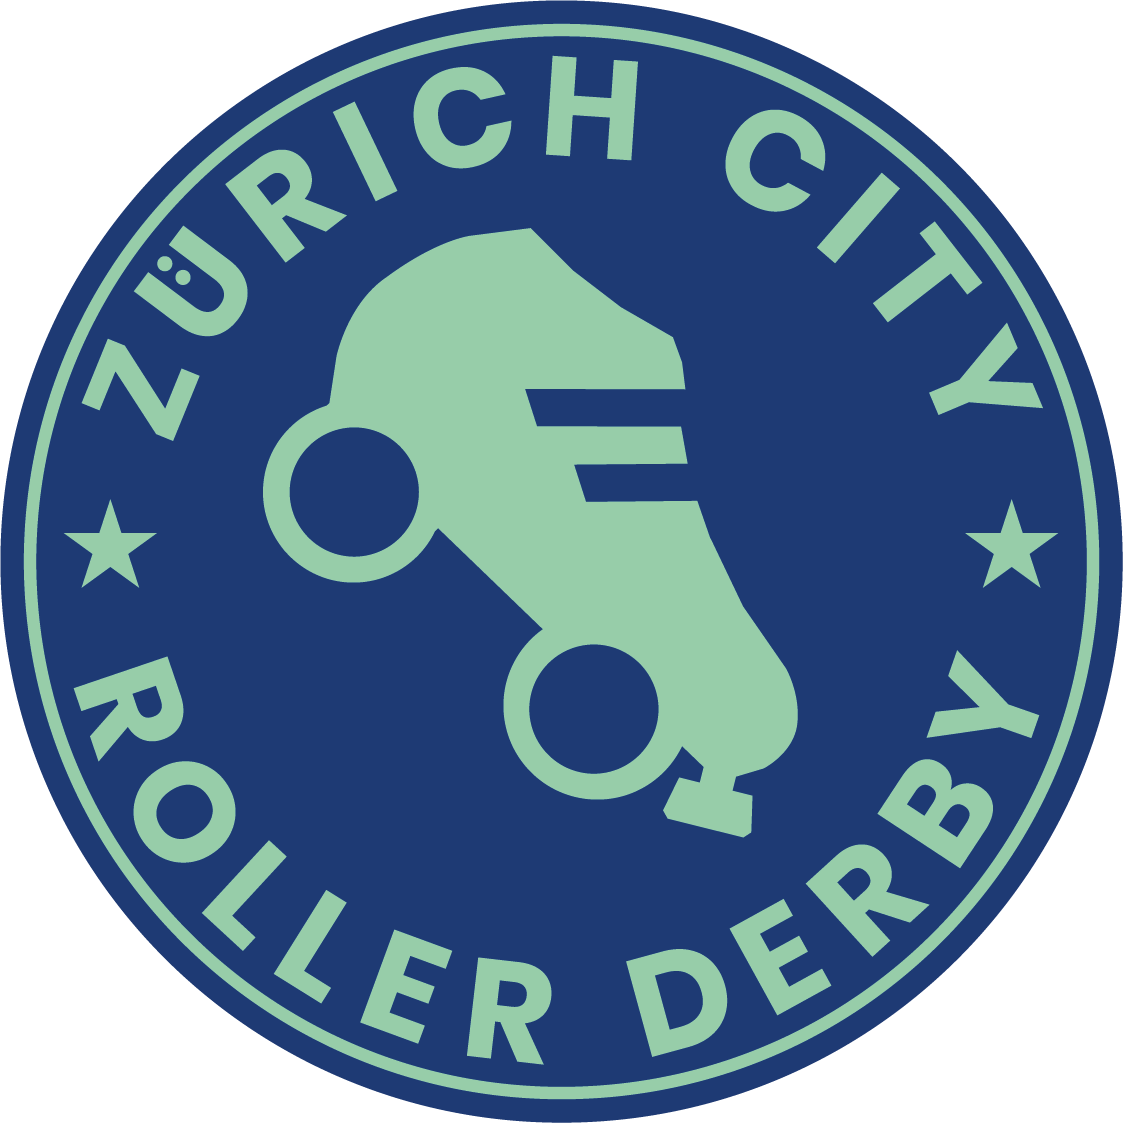 Zürich City Roller Derby